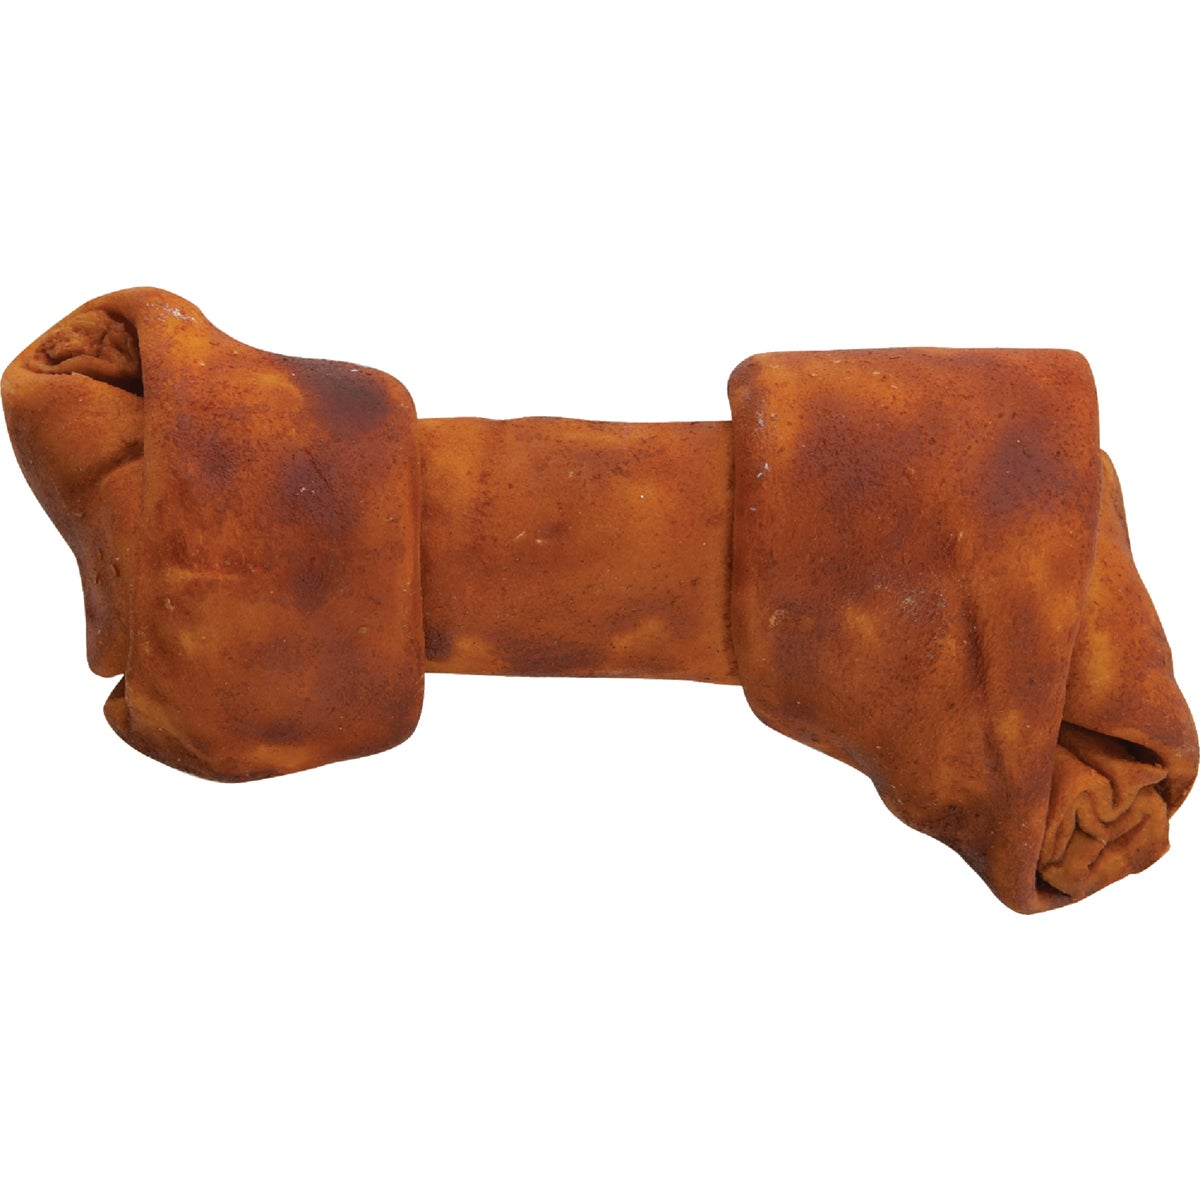 "5"" BEEF RAWHIDE DOG BONE - 00205 by Savory Prime"